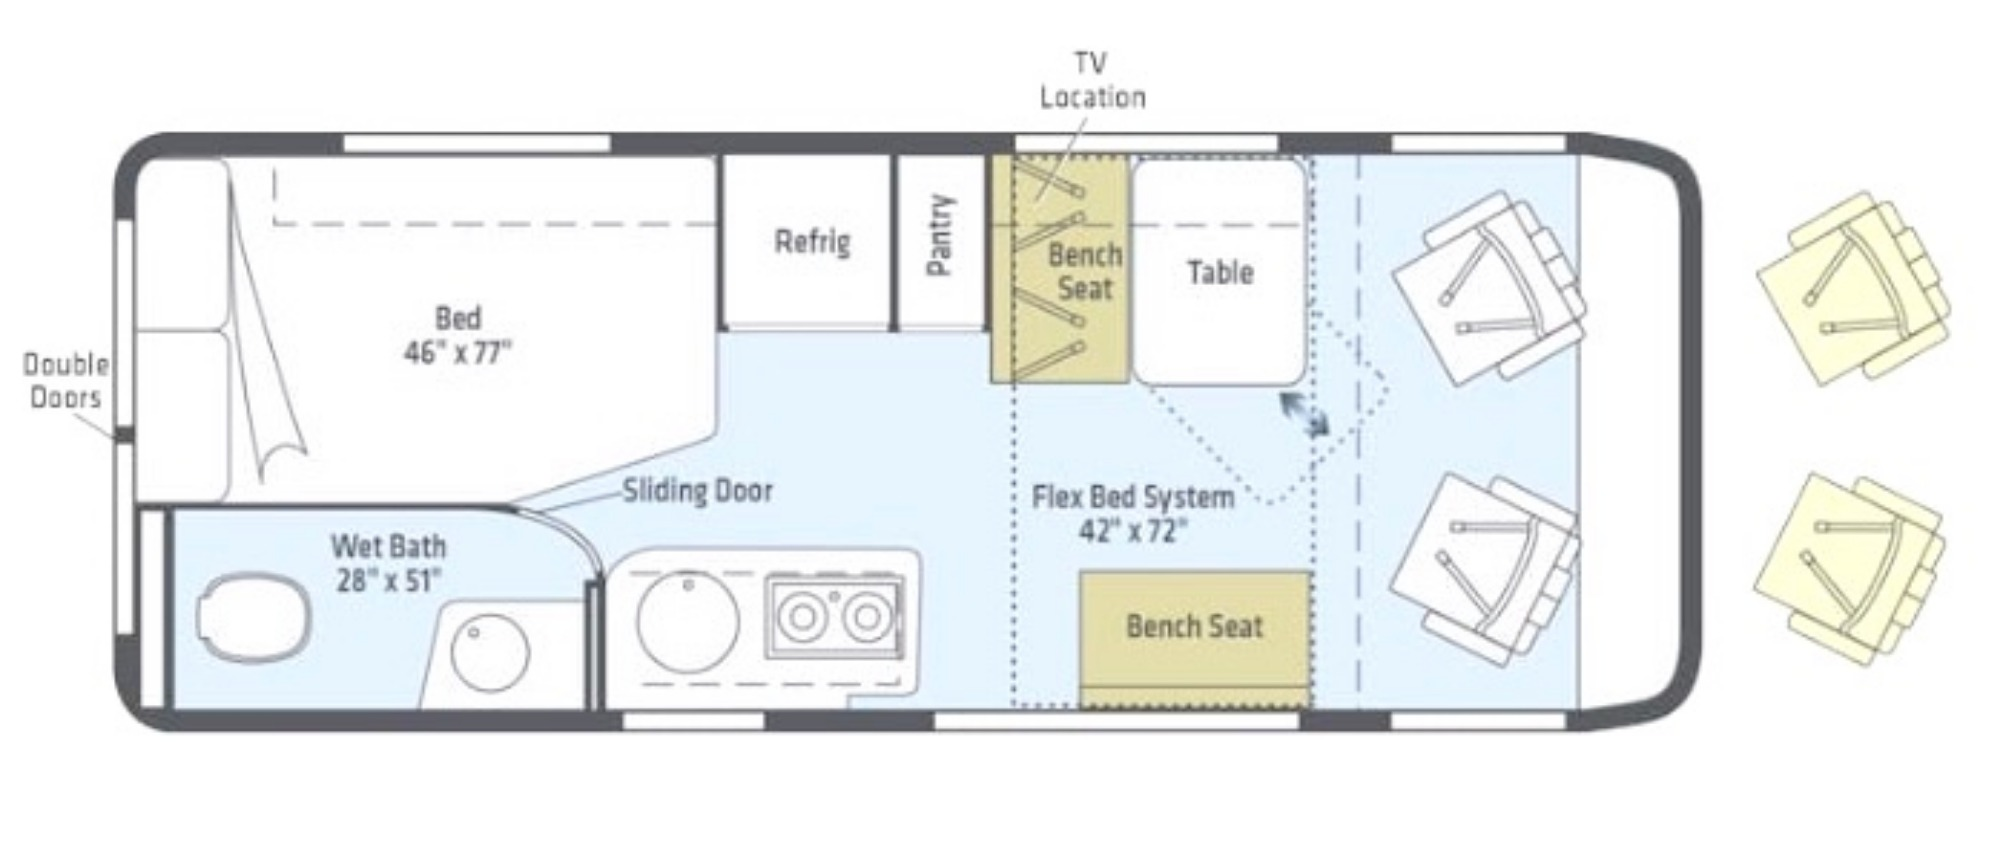 Floorplan from Winnebago. Winnebago Travato 2020